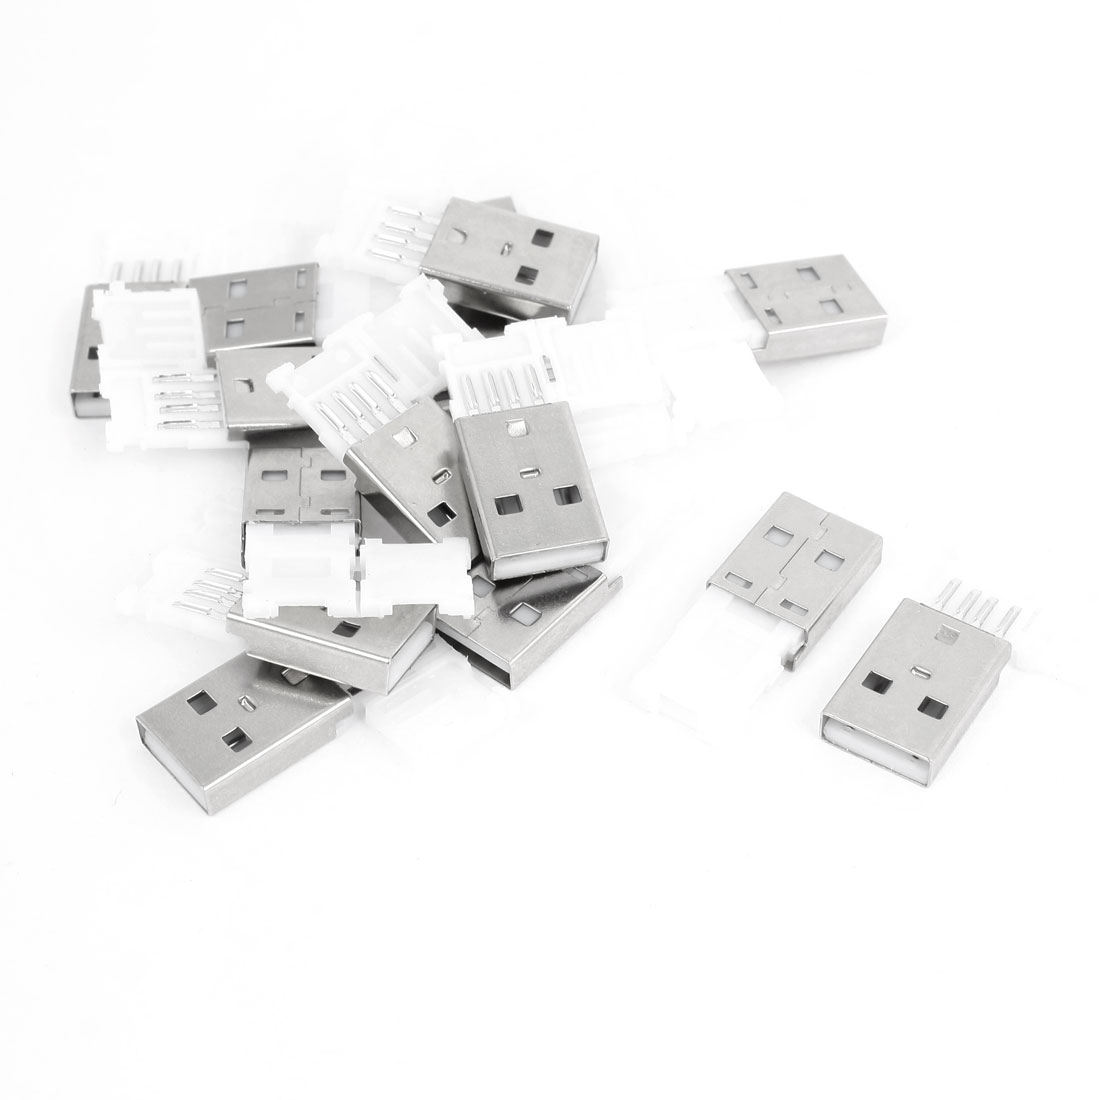 15 Pieces USB 2.0 Type A Male Jack Socket Connector Silver Tone White